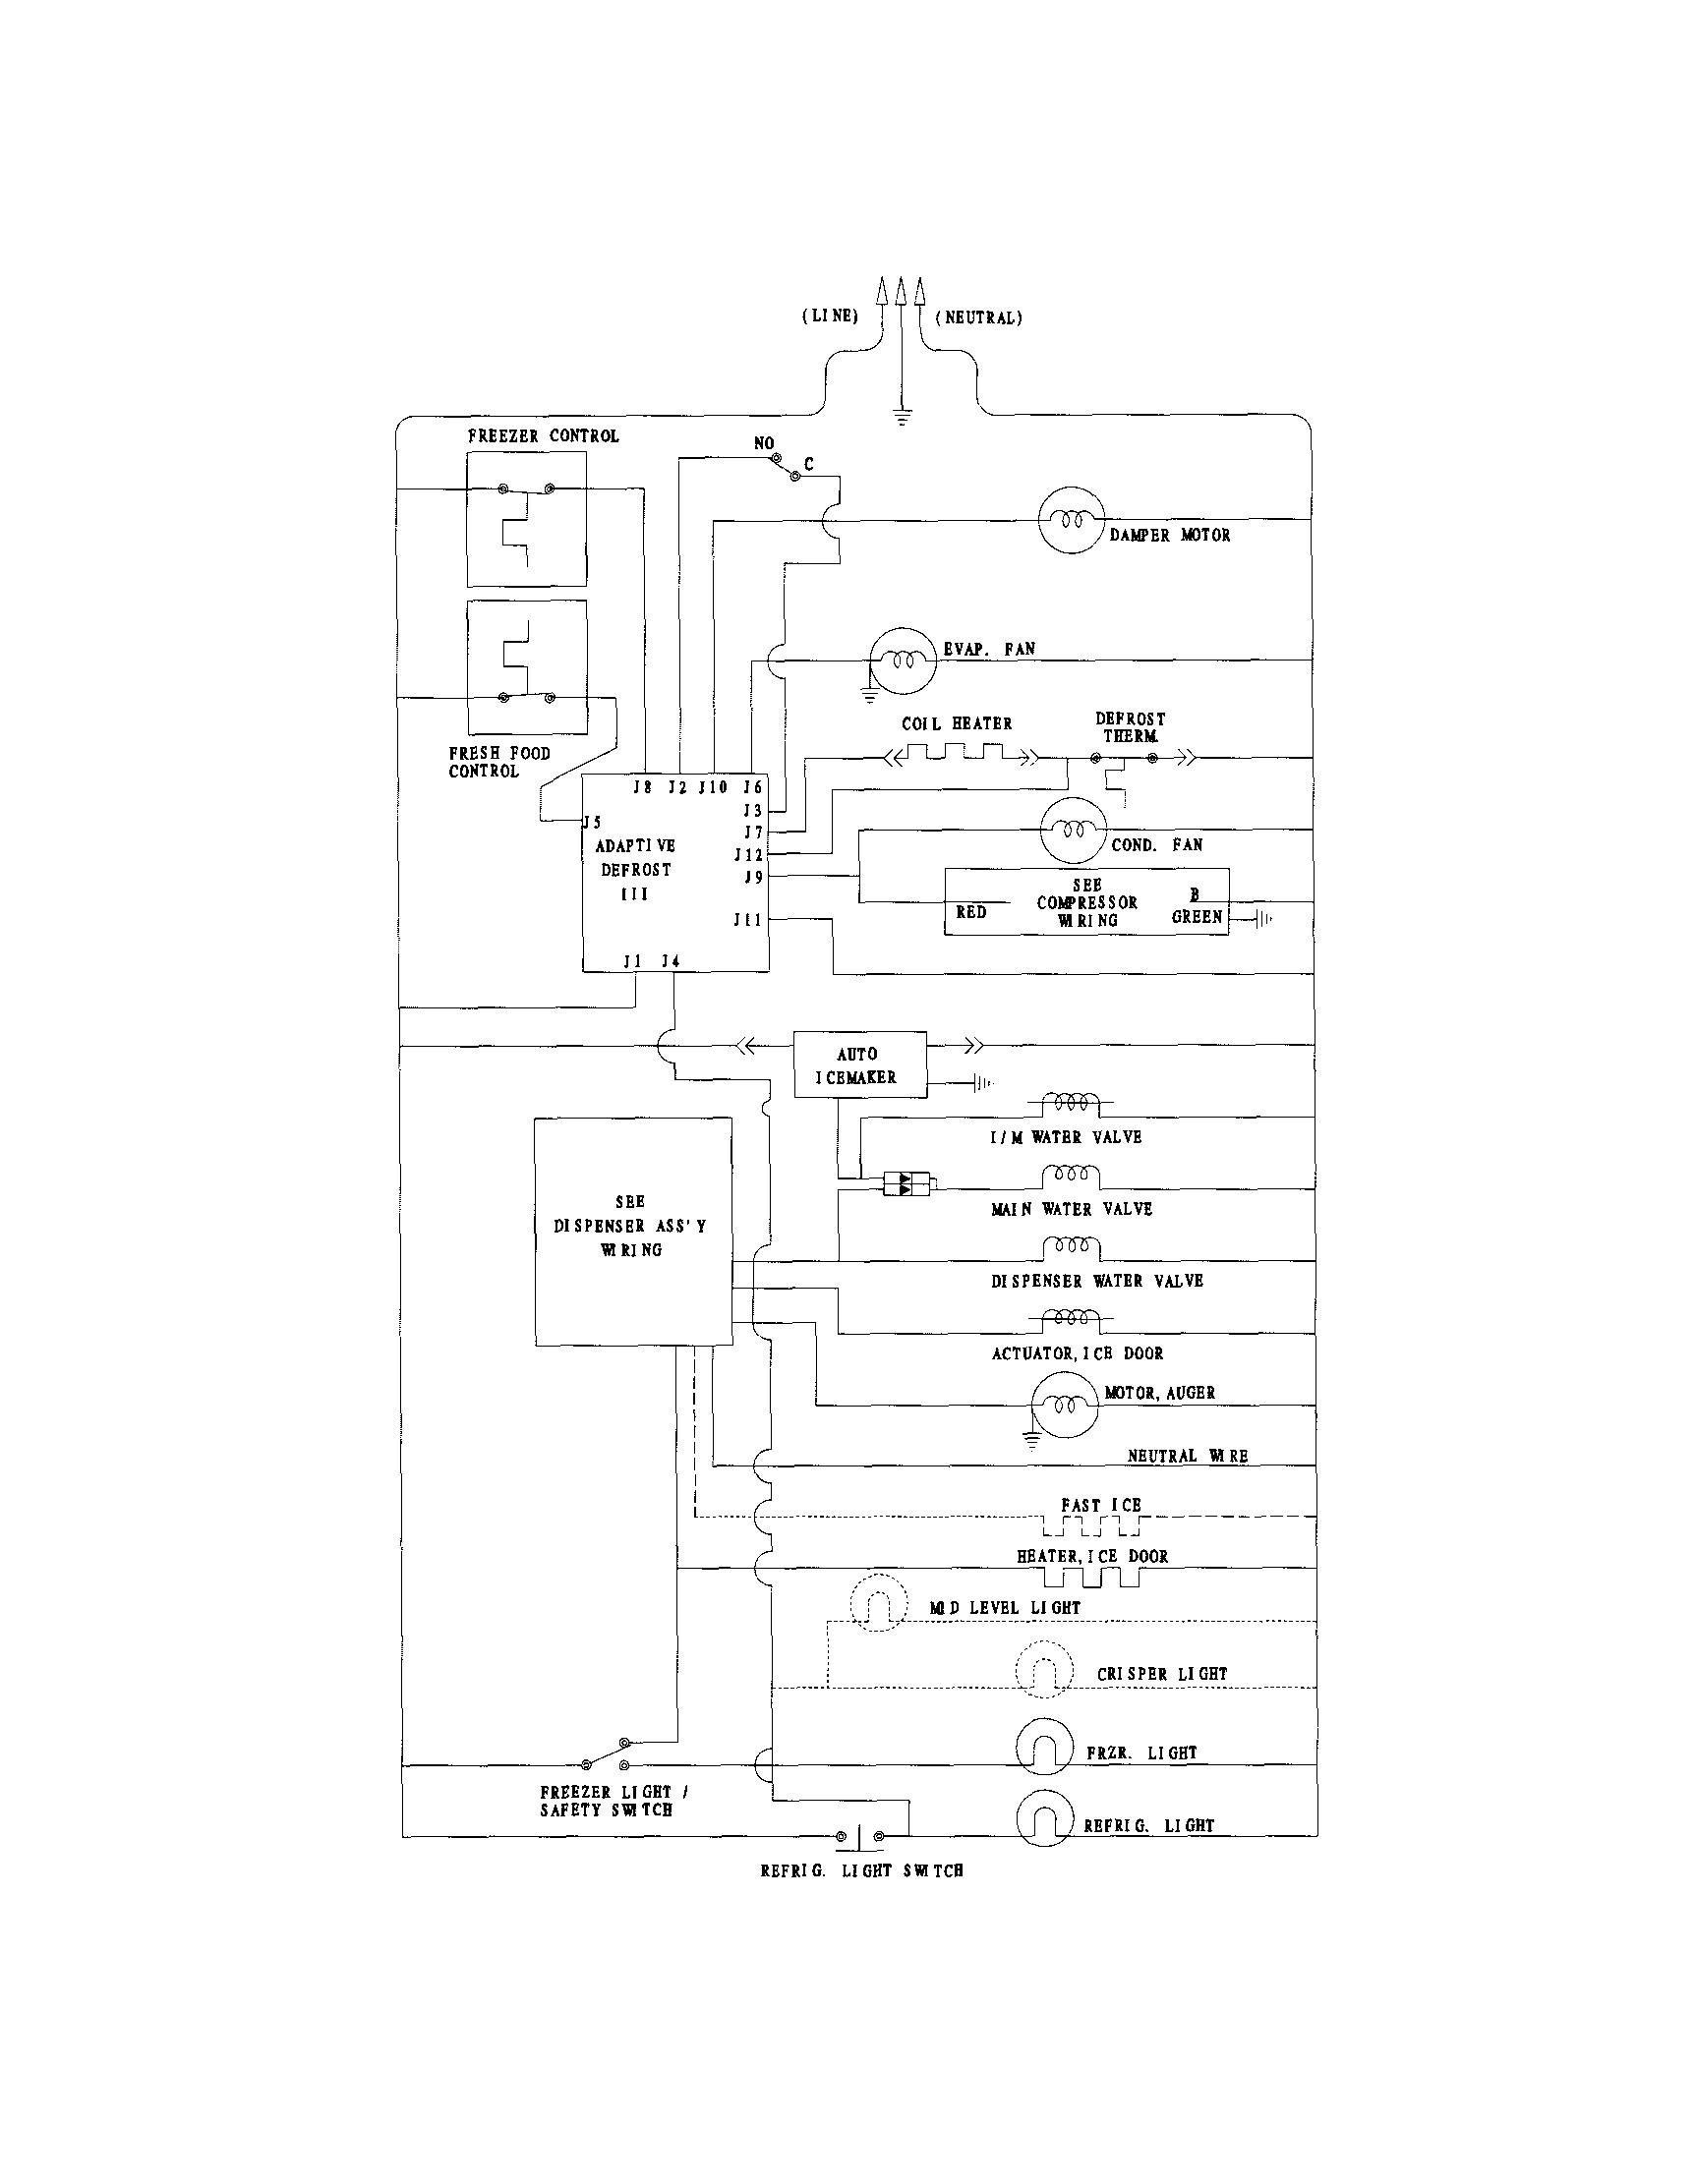 refrigerator wiring diagram whirlpool dual battery car audio frost free circuit bpl hight resolution of schematic diagrams get image about dvd ice